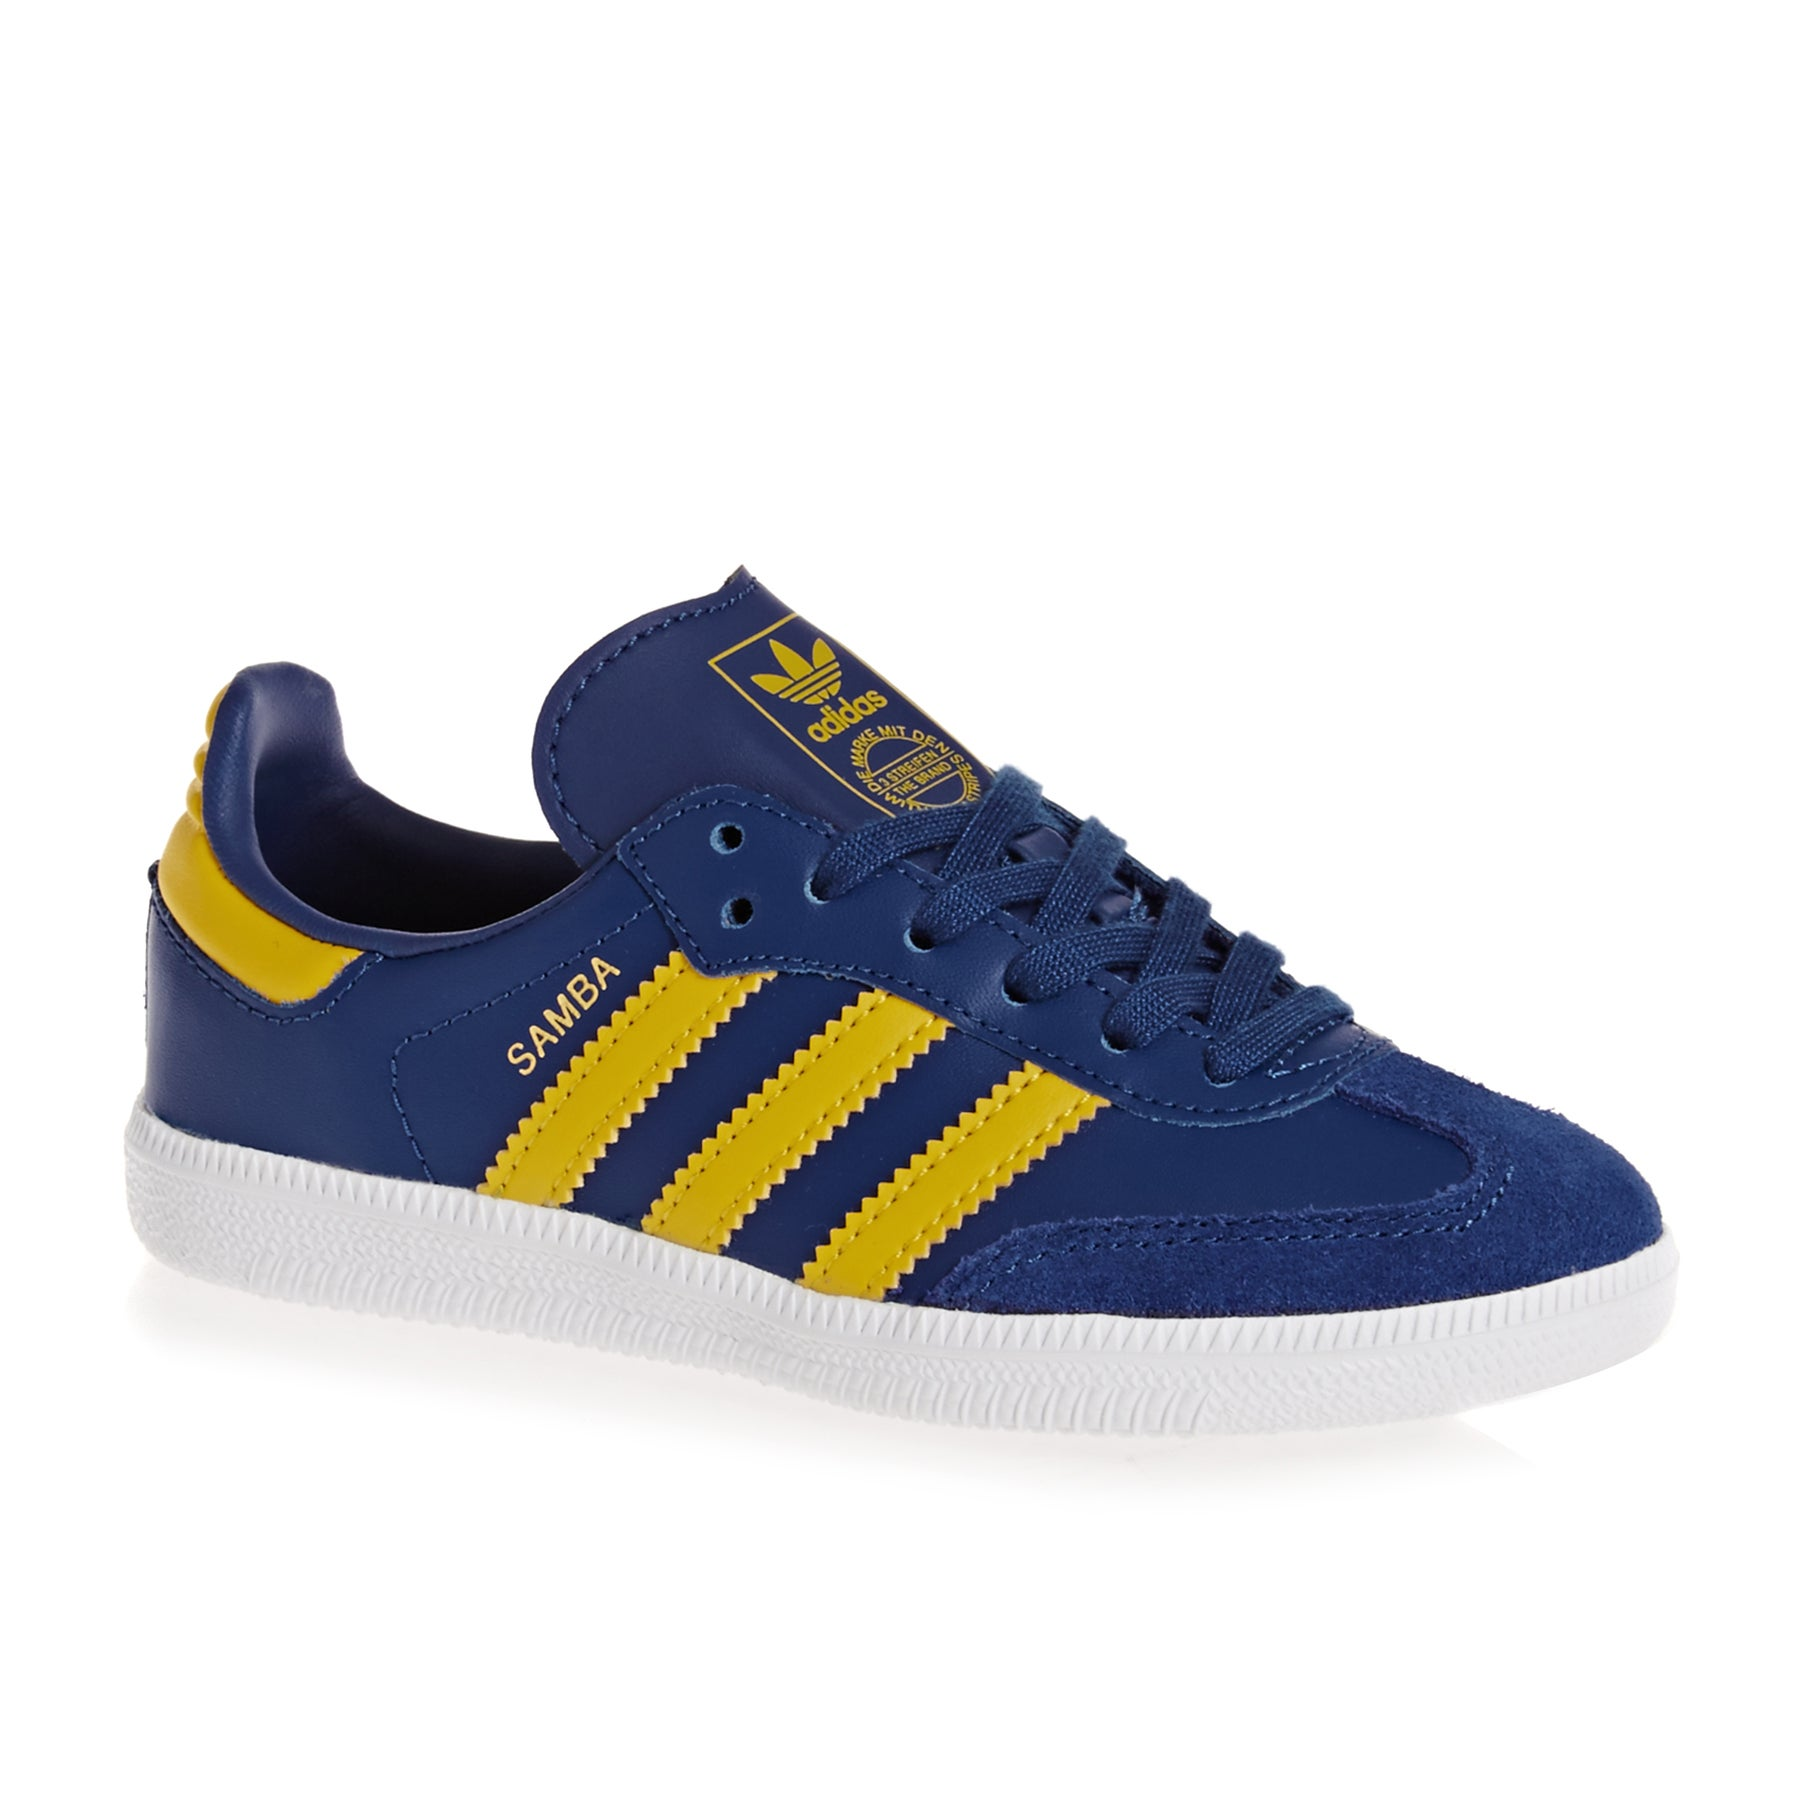 Adidas Originals Samba OG Crib Kids Shoes - Mysink/eqtyel/eqtyel